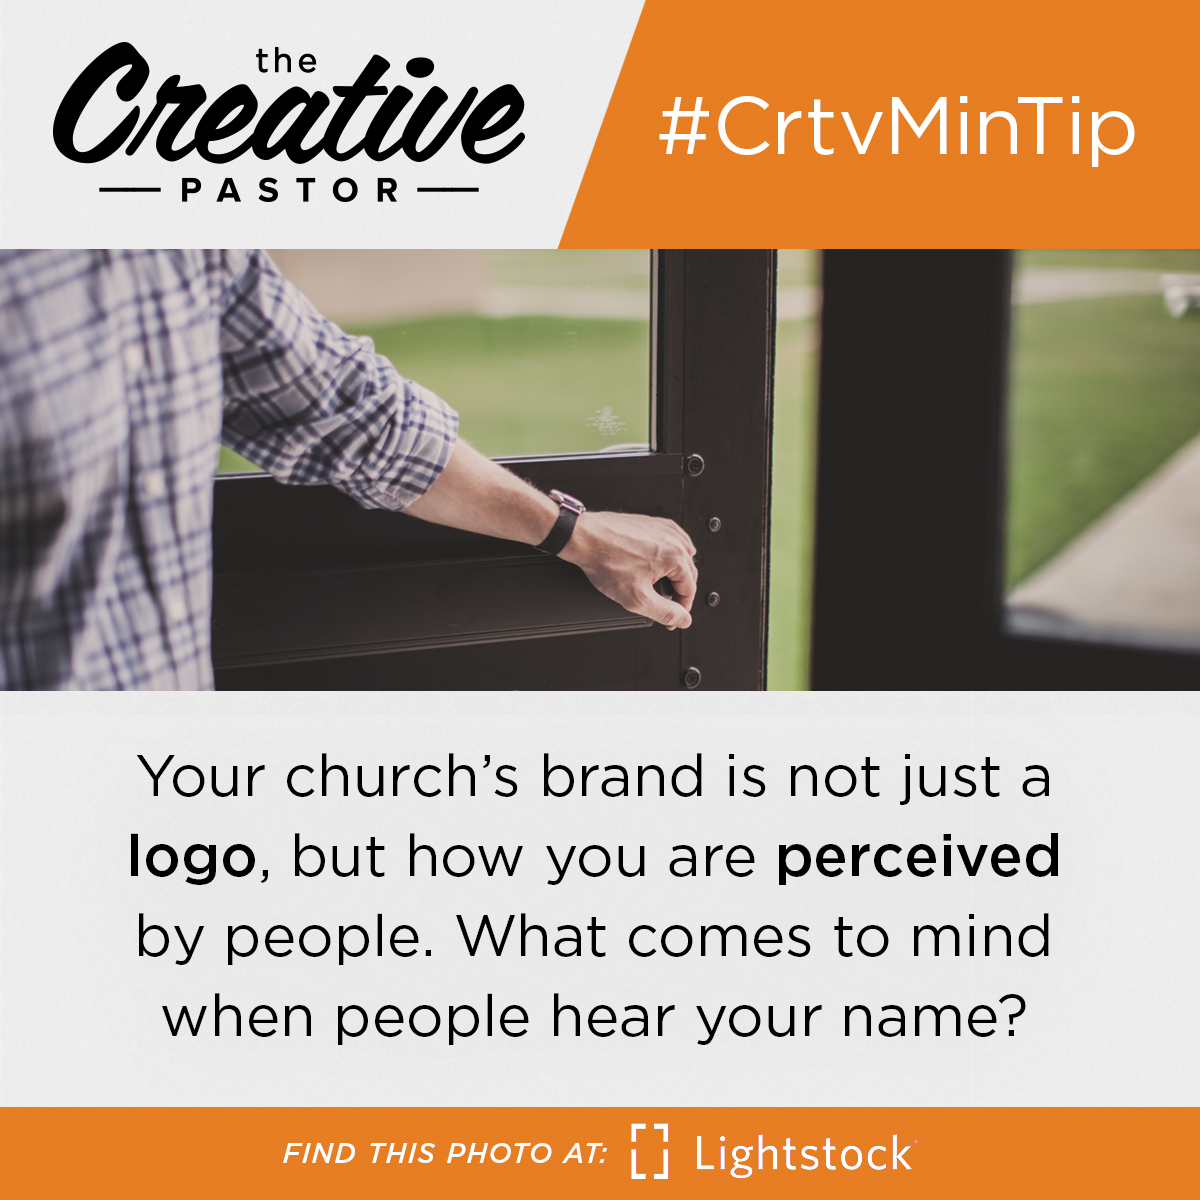 Your church's brand is not just a logo, but how you are perceived by people. What comes to mind when people hear your name?